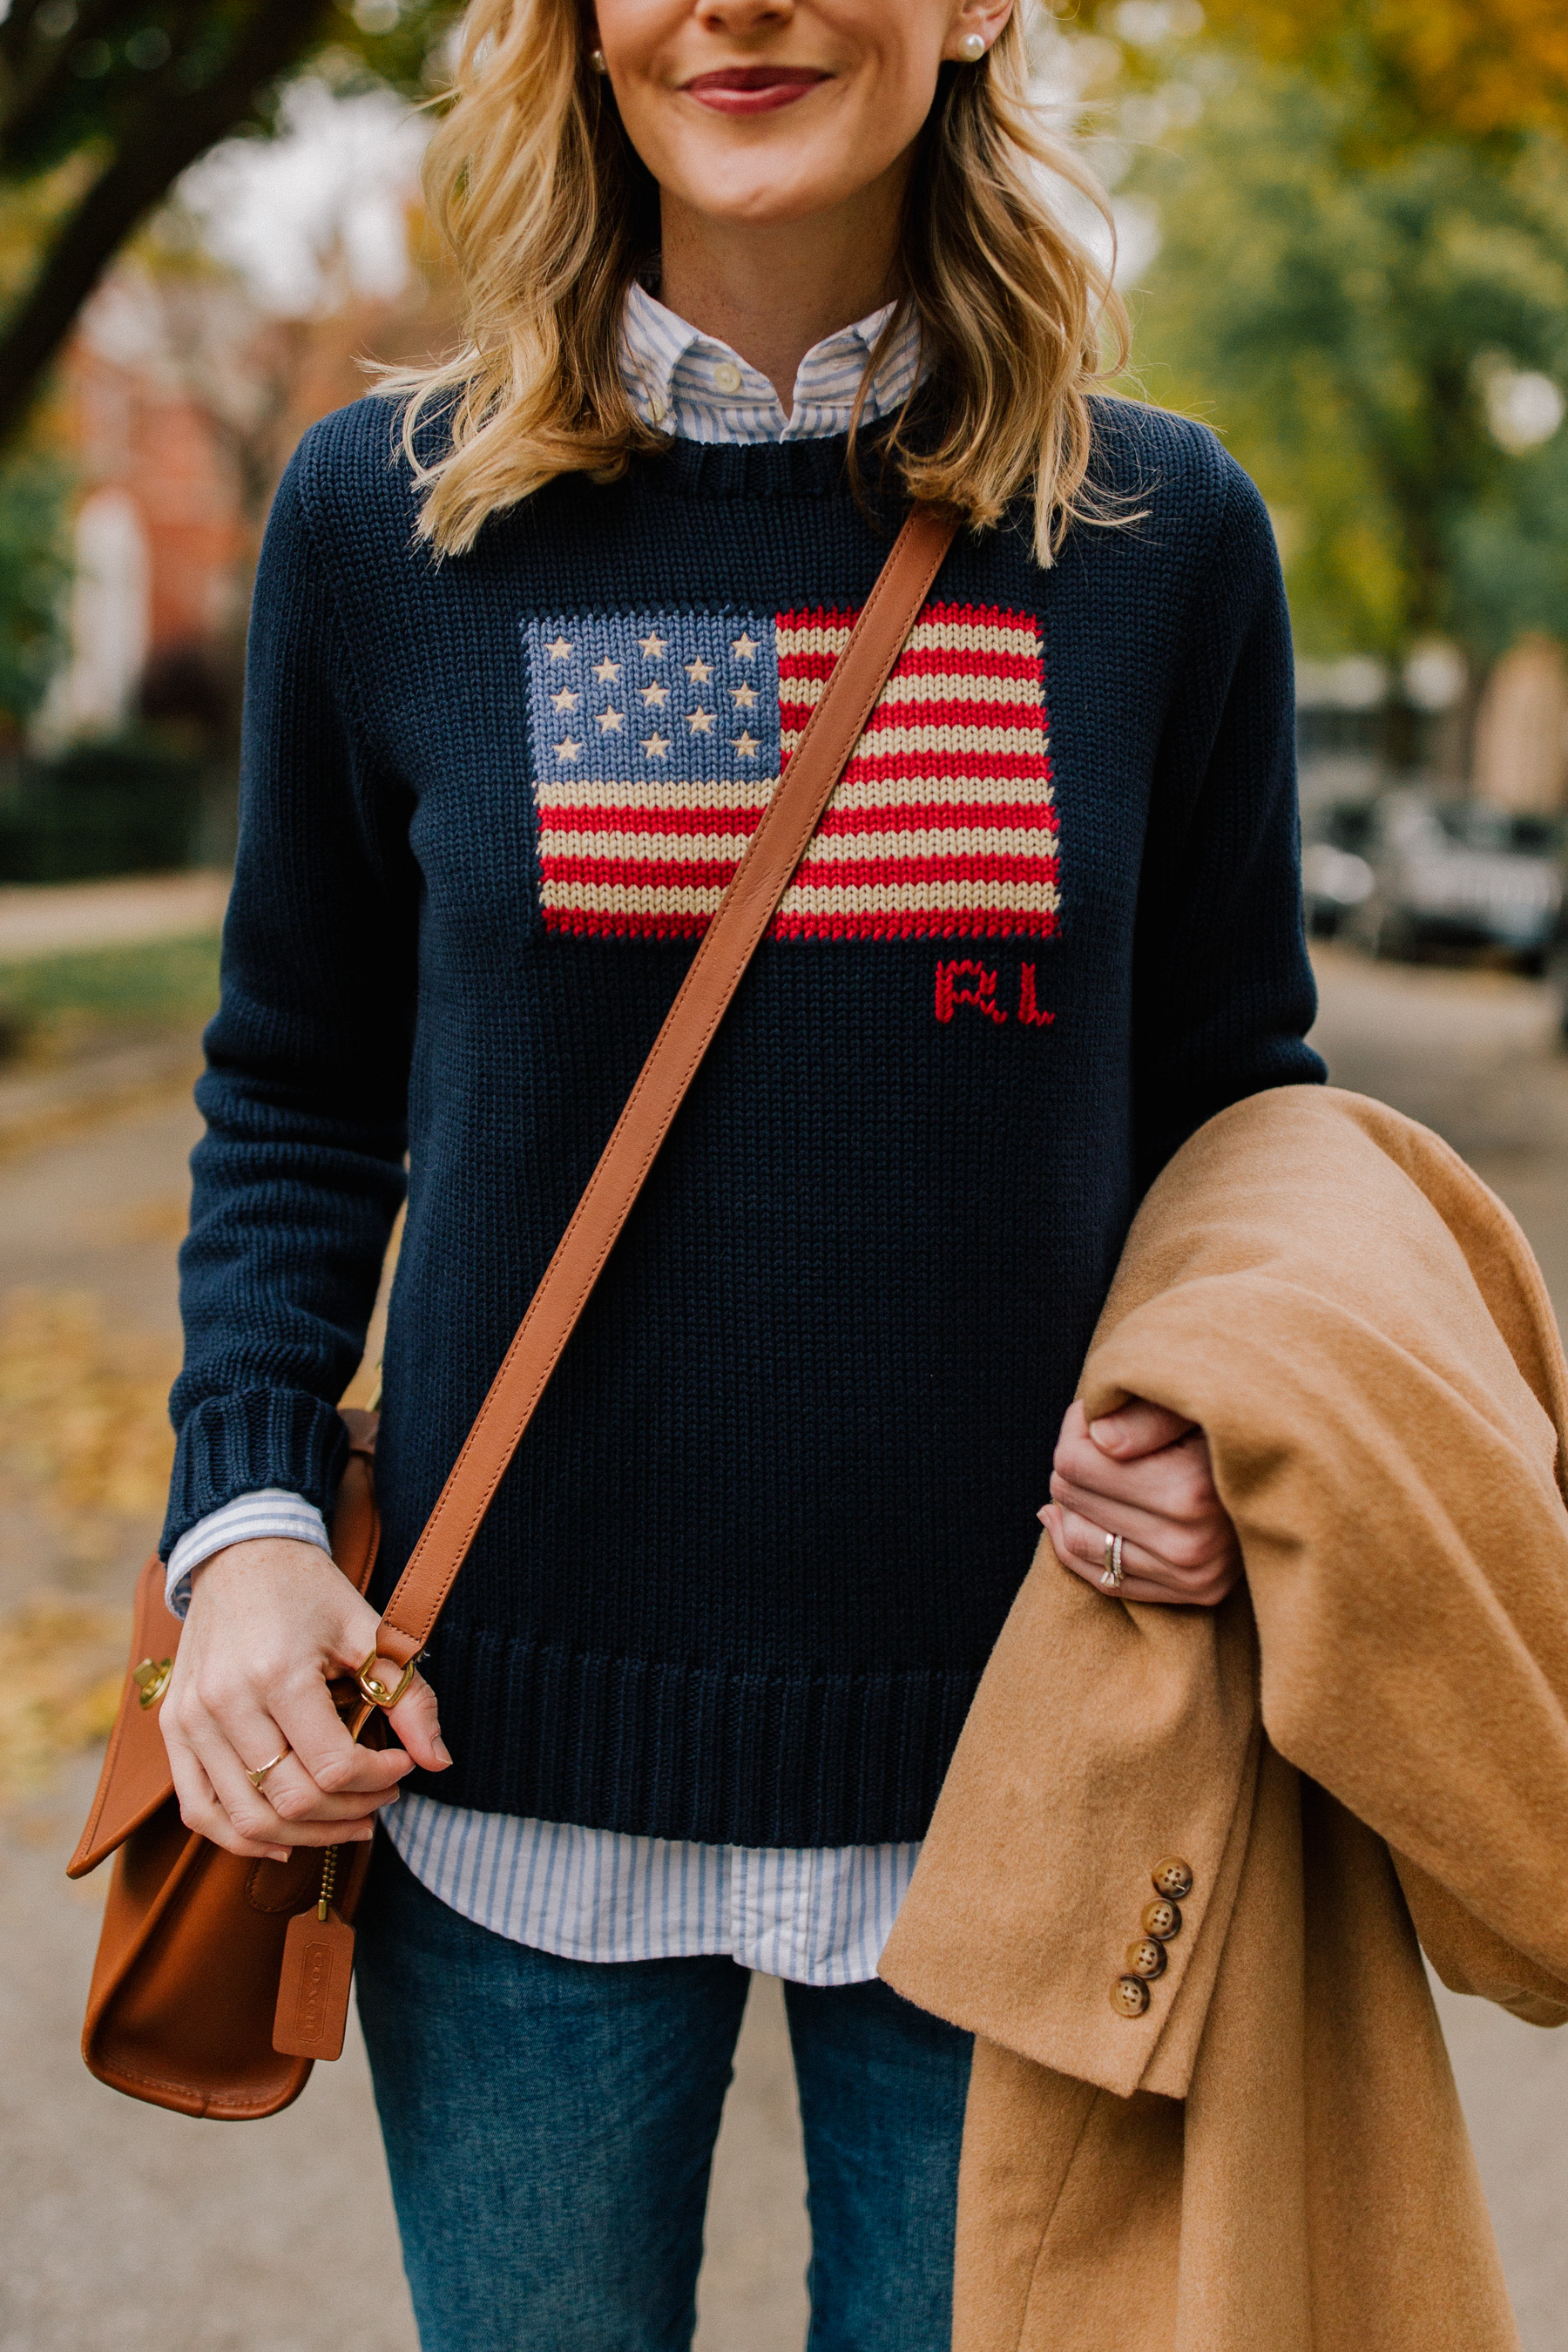 On Kelly: Ralph Lauren American Flag Sweater, Camel Coat, Striped Button Down